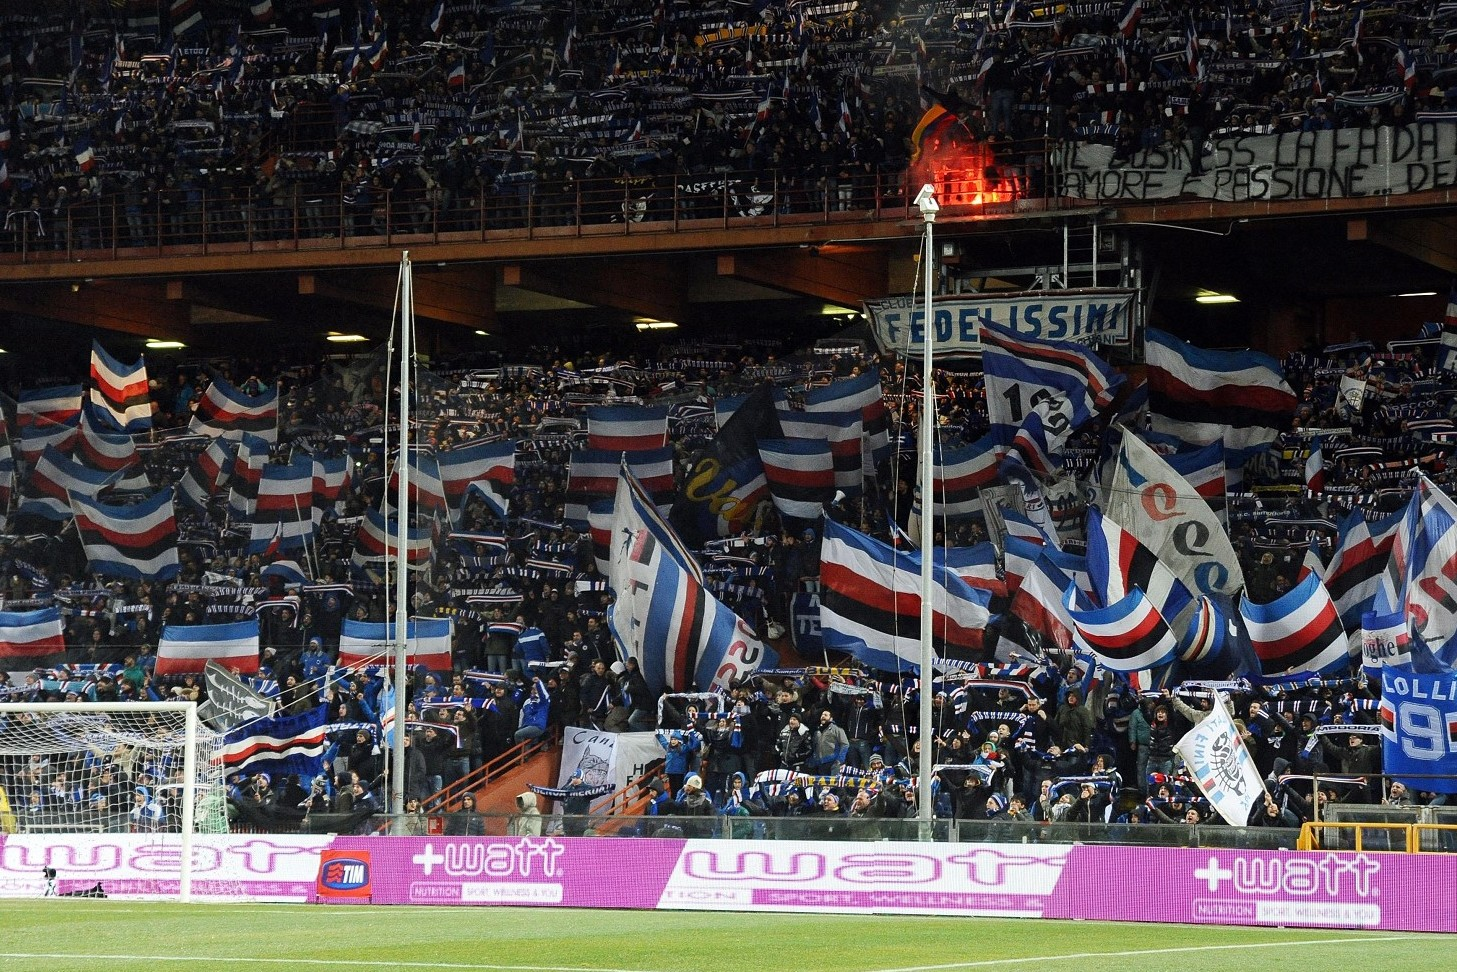 Sampdoria Napoli live gratis streaming.